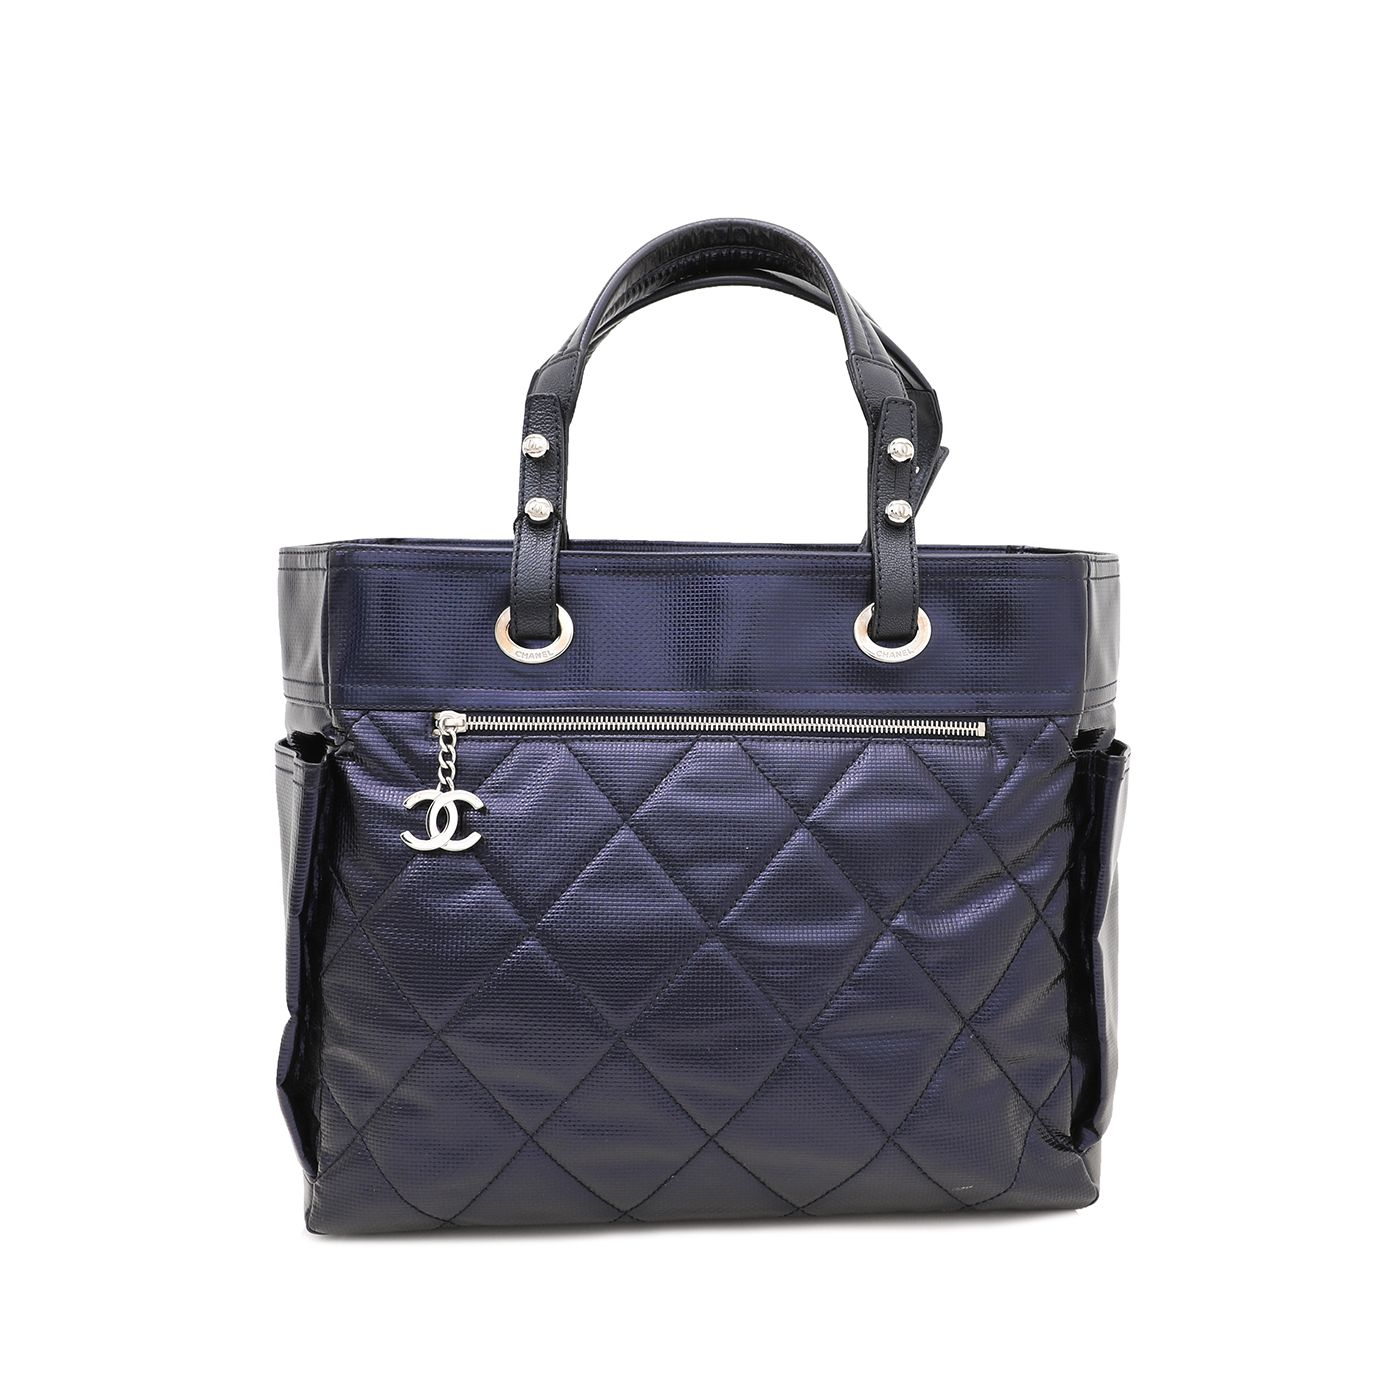 Chanel Metallic Purple Biarritz Tote Bag W/ Pouch Large